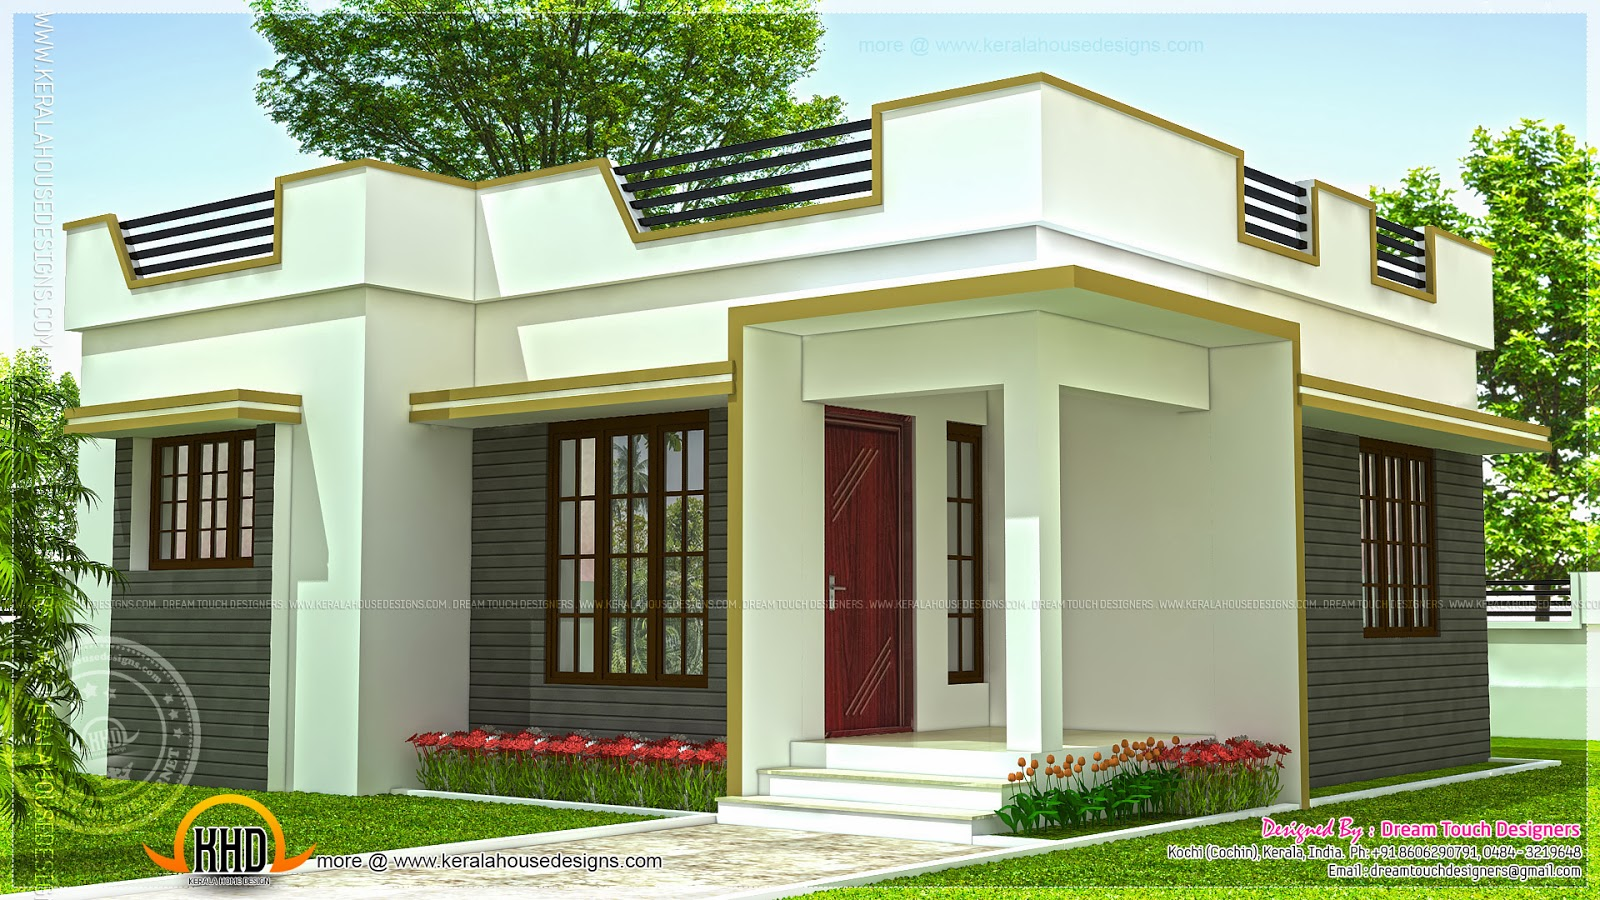 35 small and simple but beautiful house with roof deck for Home designs small